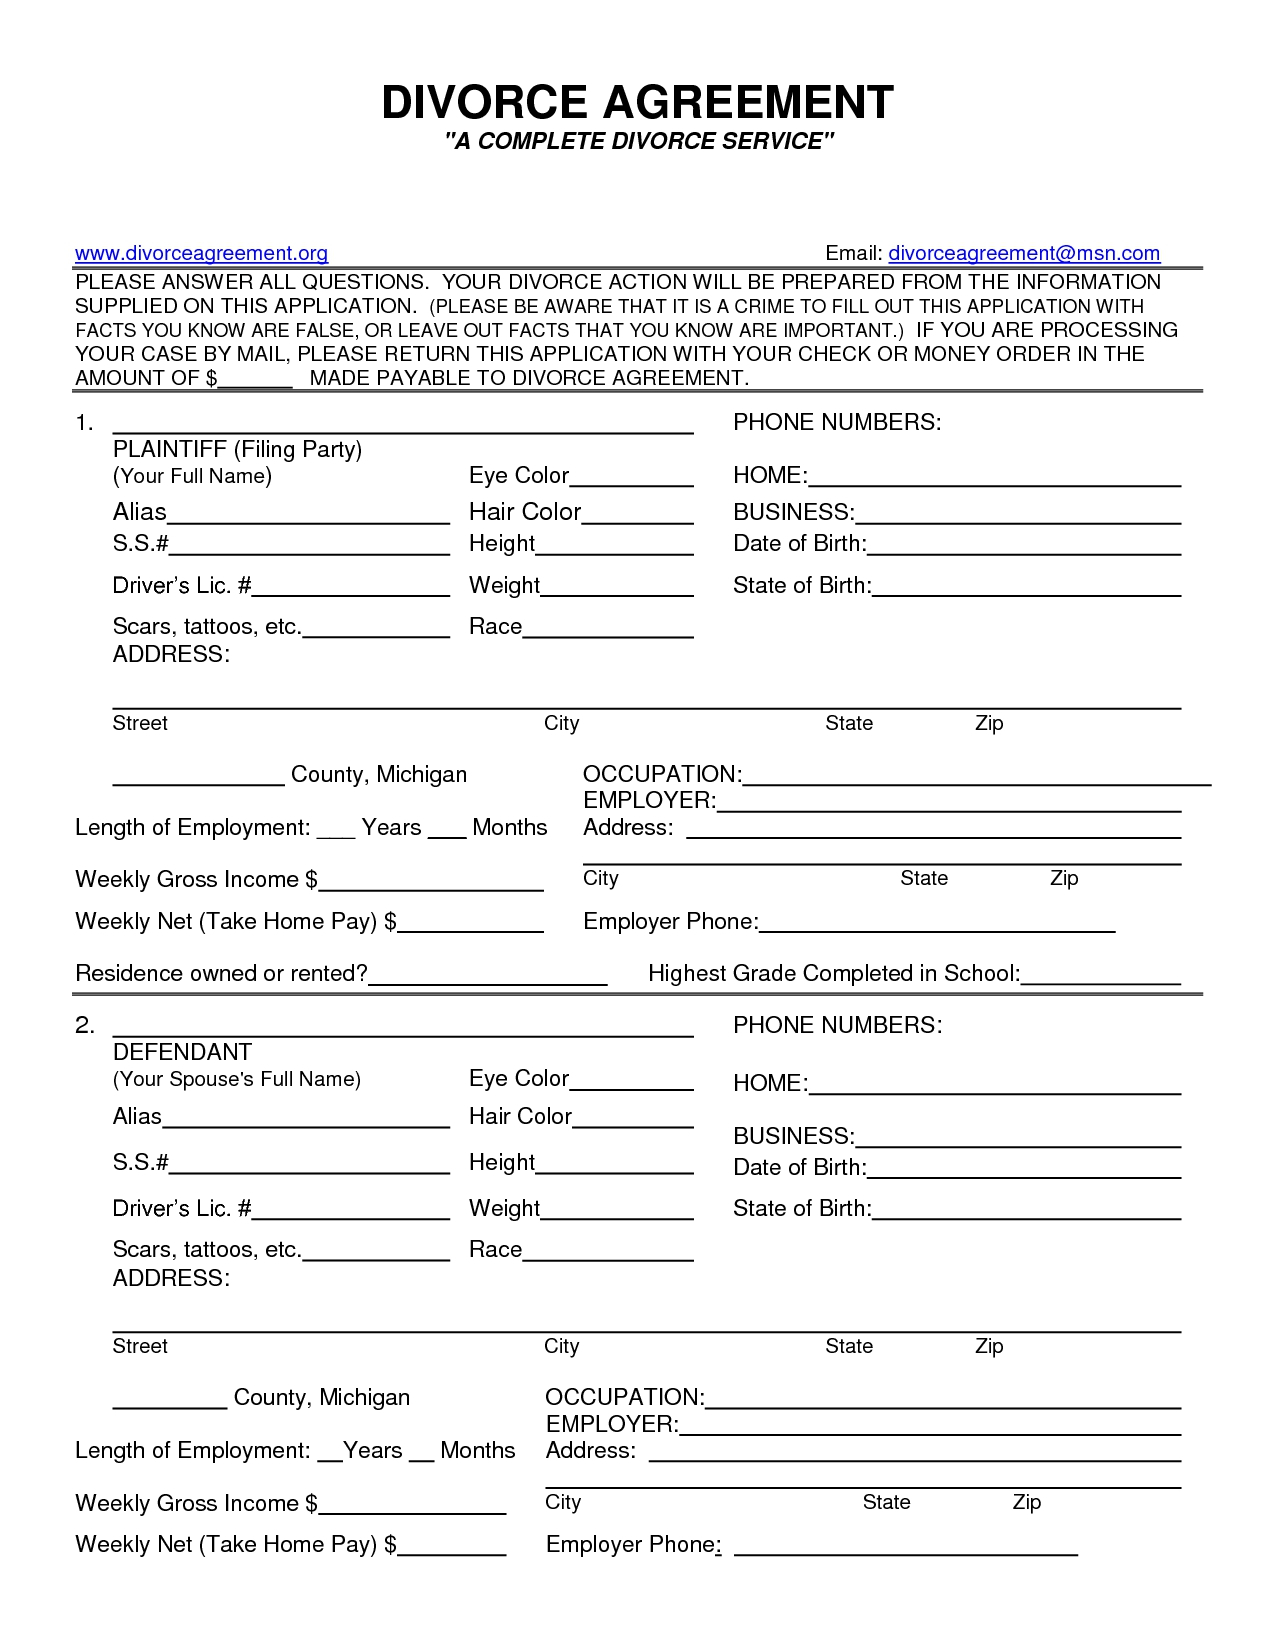 Fake Bill Of Sale Best Sc Divorce Forms Adoption Papers Ins  Free - Free Printable Divorce Papers For Louisiana